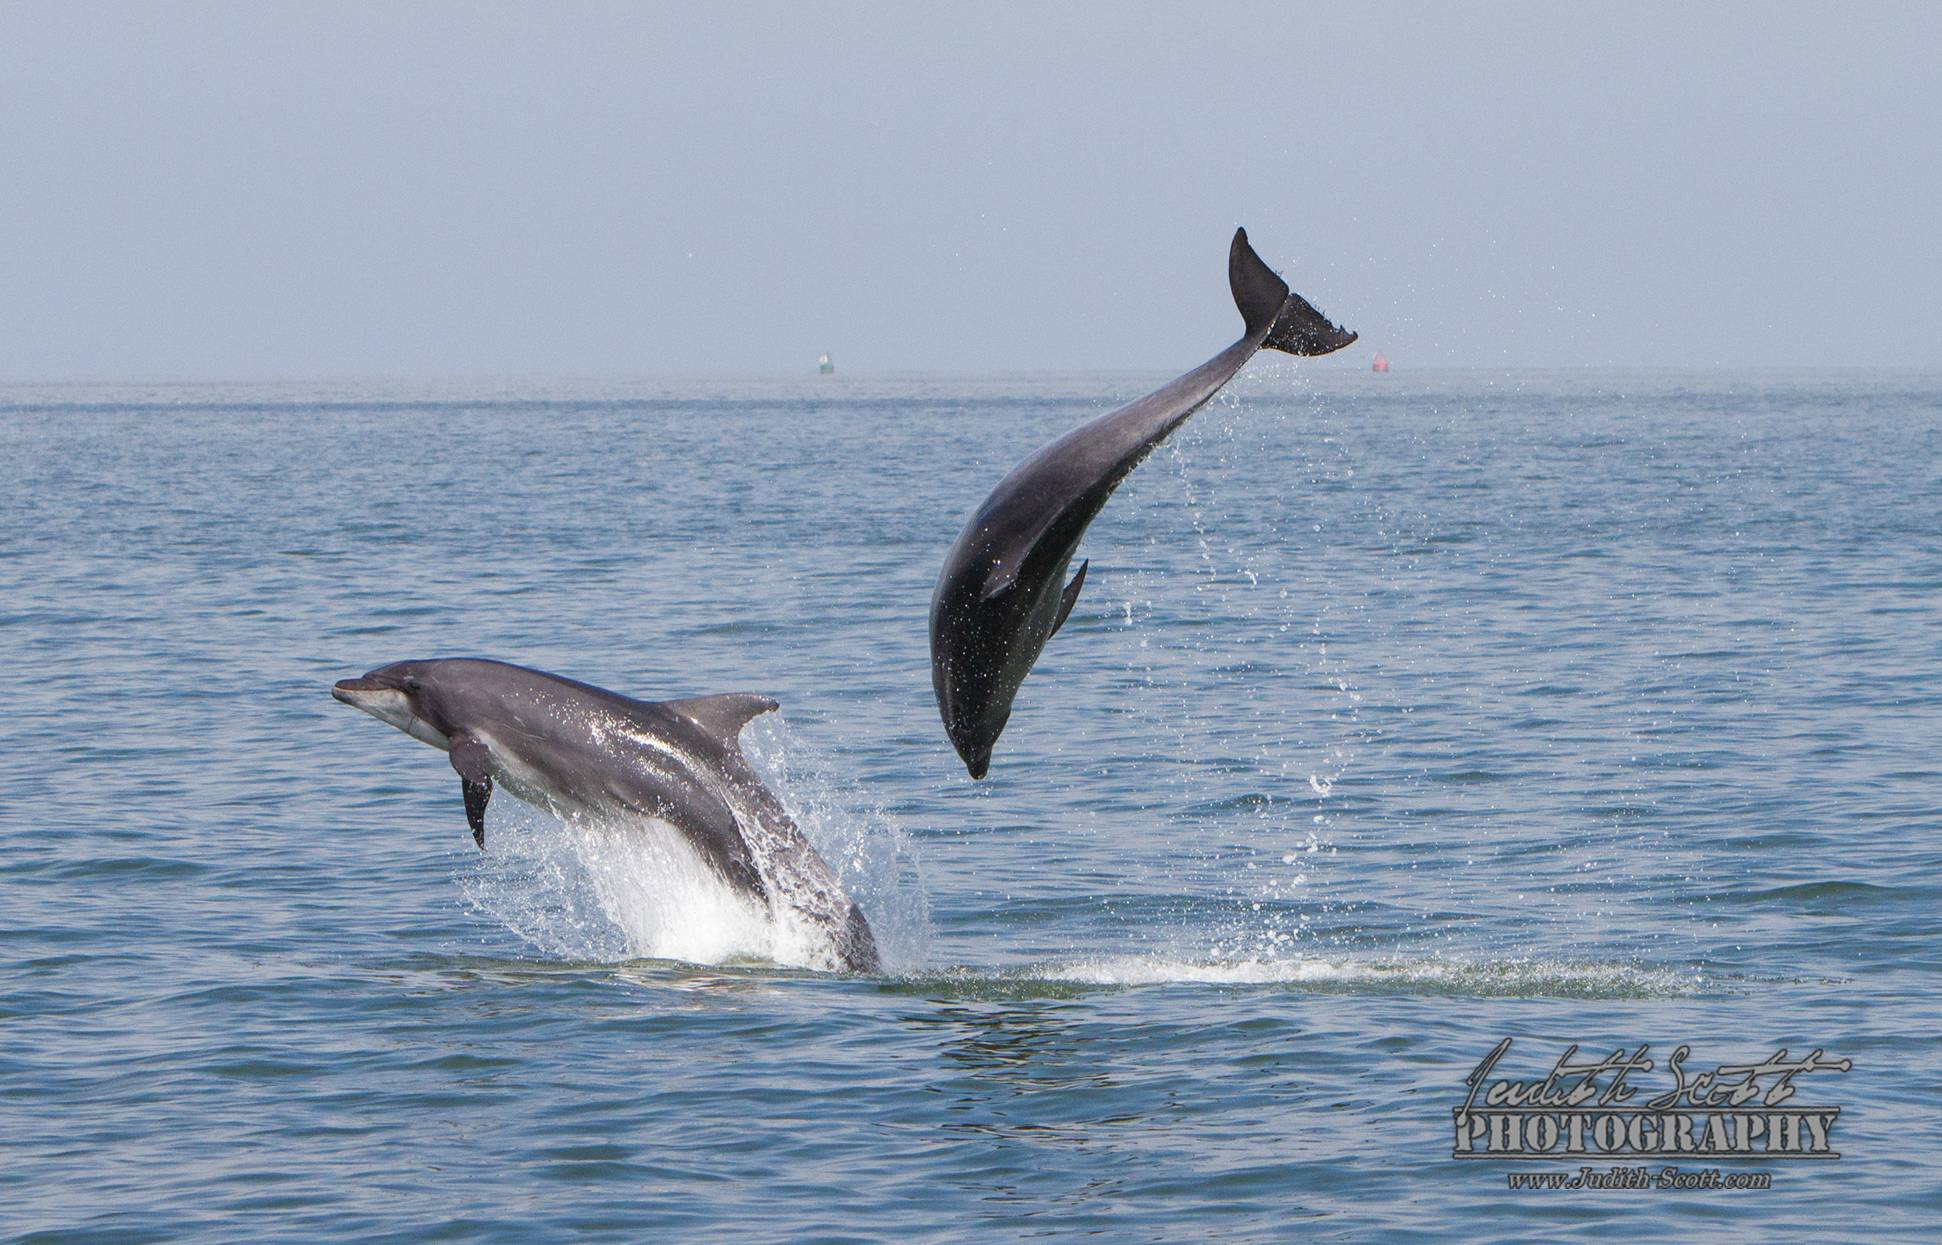 Positive news – no dolphin captures in Namibian waters